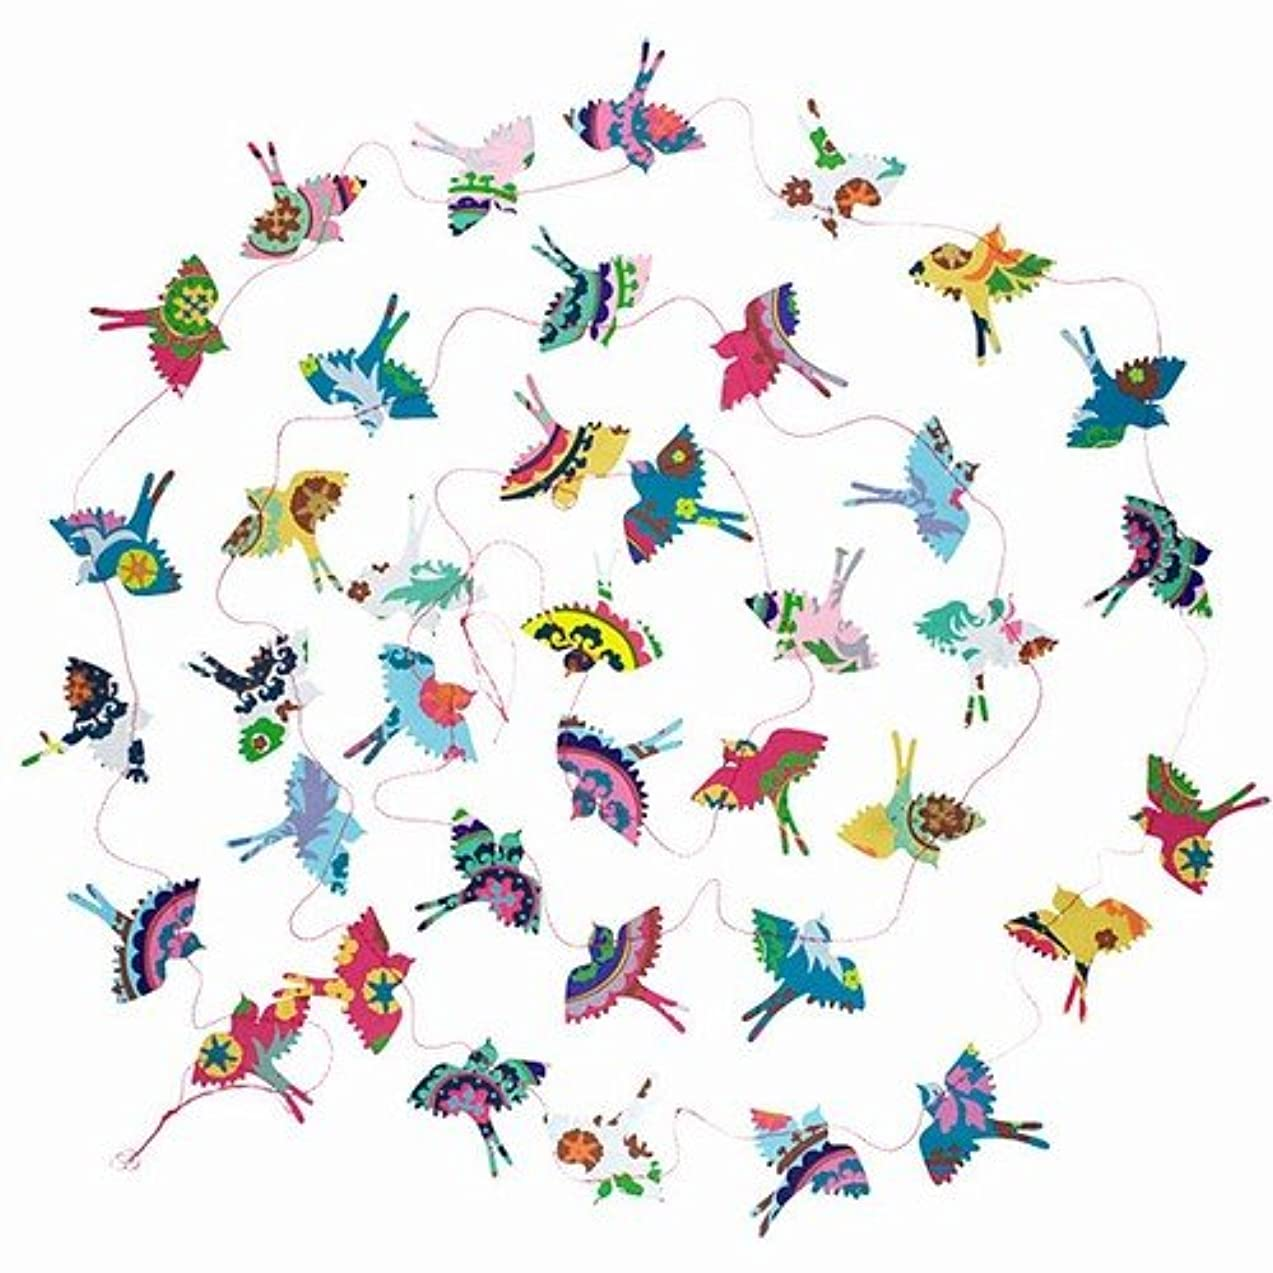 World Buyers PAPER BIRD GARLAND WITH PINK STRING-BLUE,WHITE,PINK,ORANGE,YELLOW,GREEN,SILVER, AND PINK 2